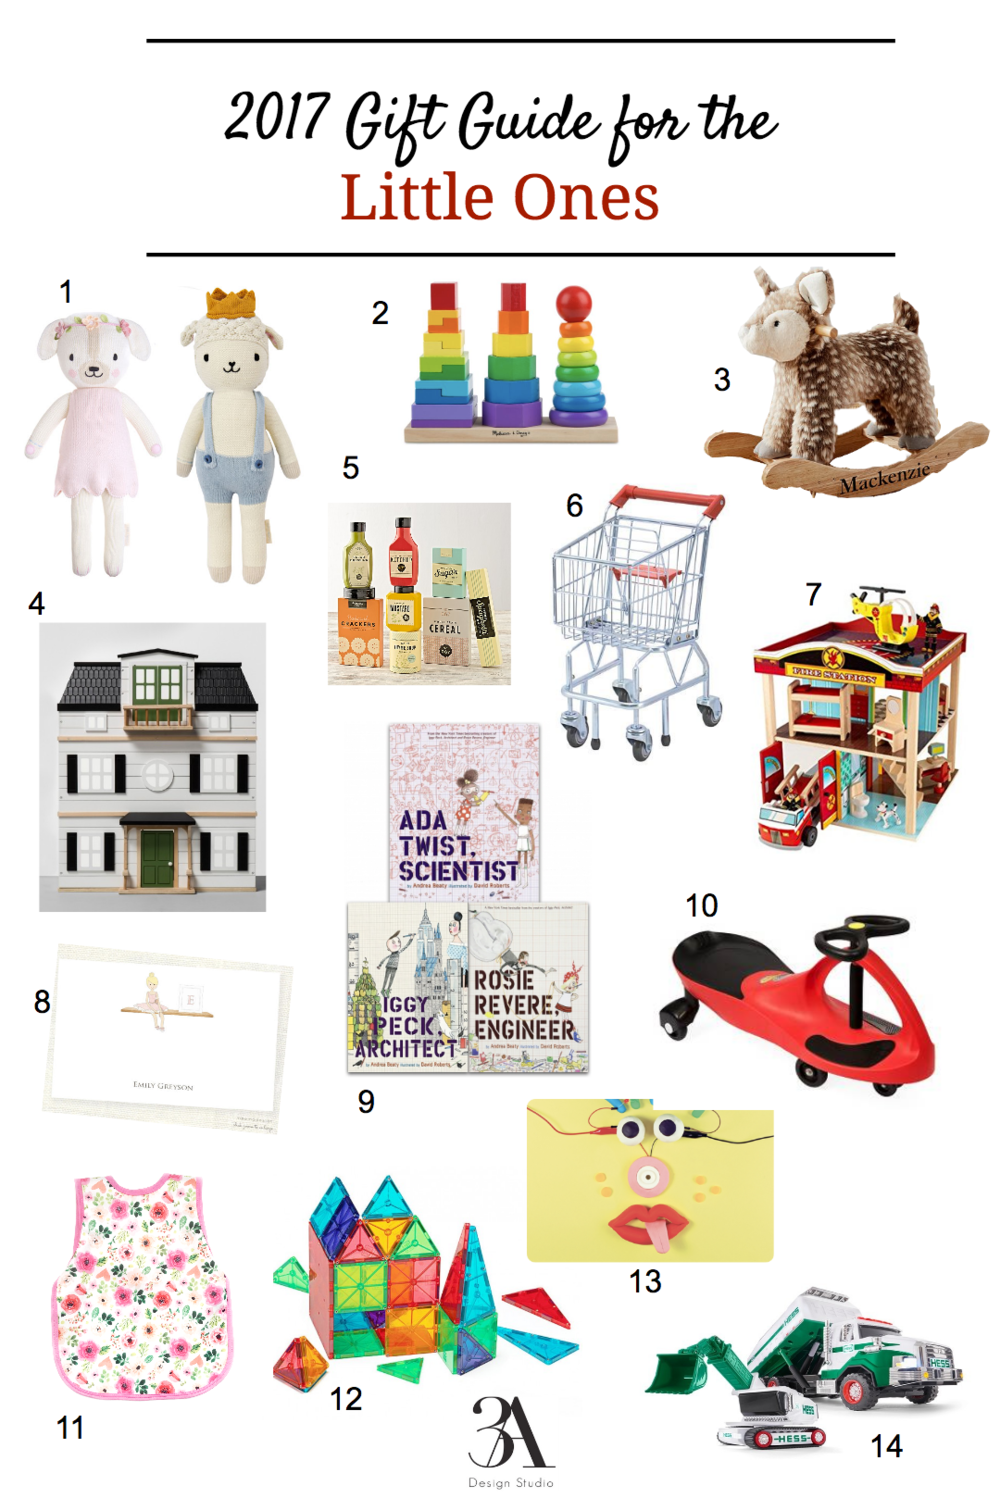 2017 gift guide for kids 3a design studio